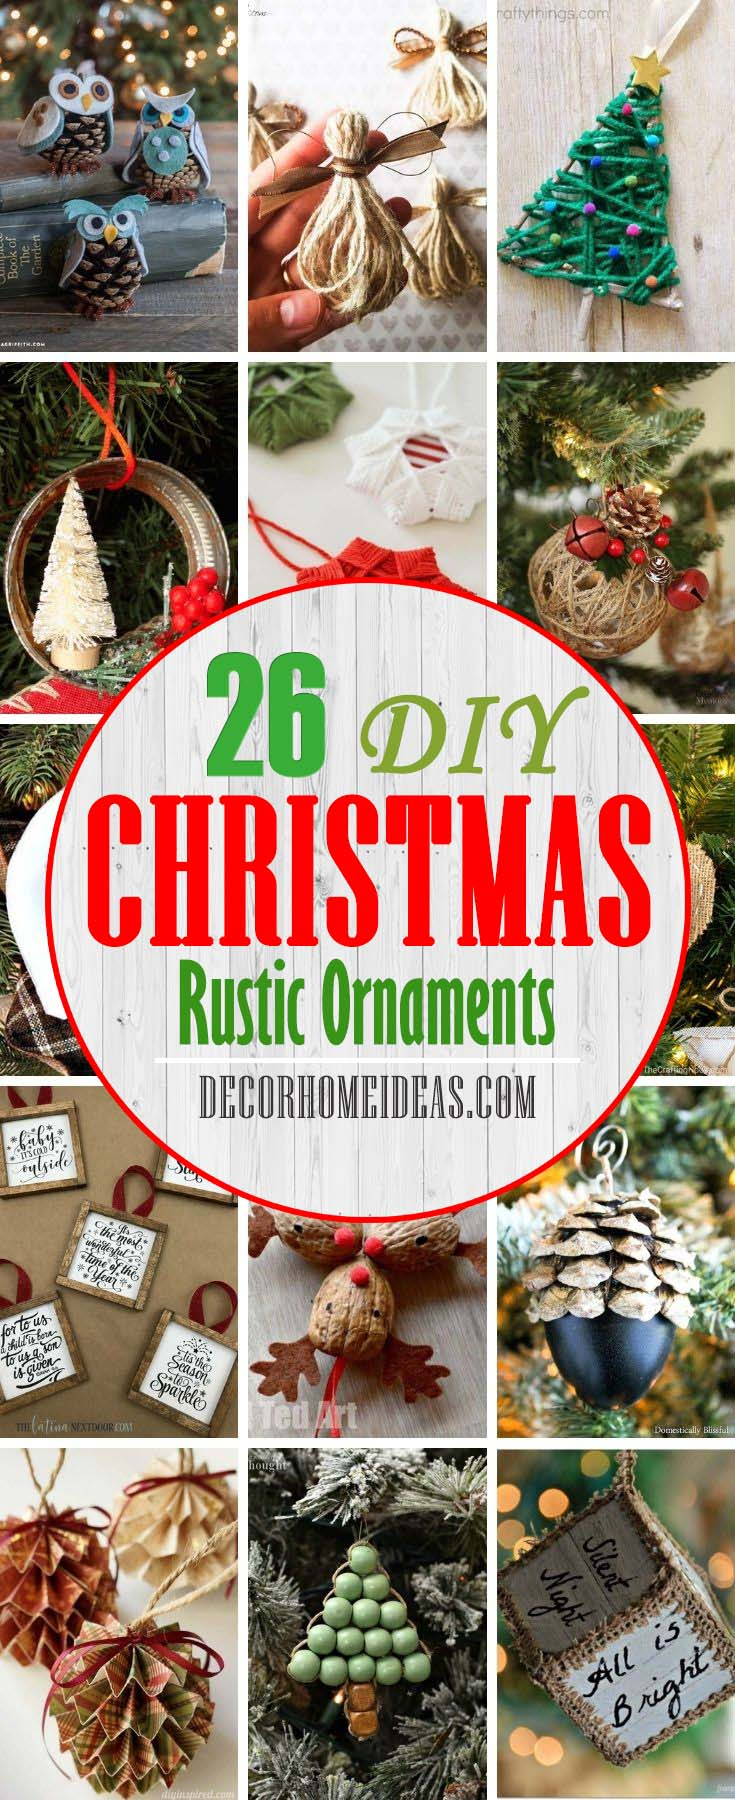 Best Rustic DIY Christmas Ornaments. Christmas is just around the corner so it's time to dress up your tree. If you need some inspiration we have gathered some top easy, creative and rustic DIY Christmas… #decorhomeideas